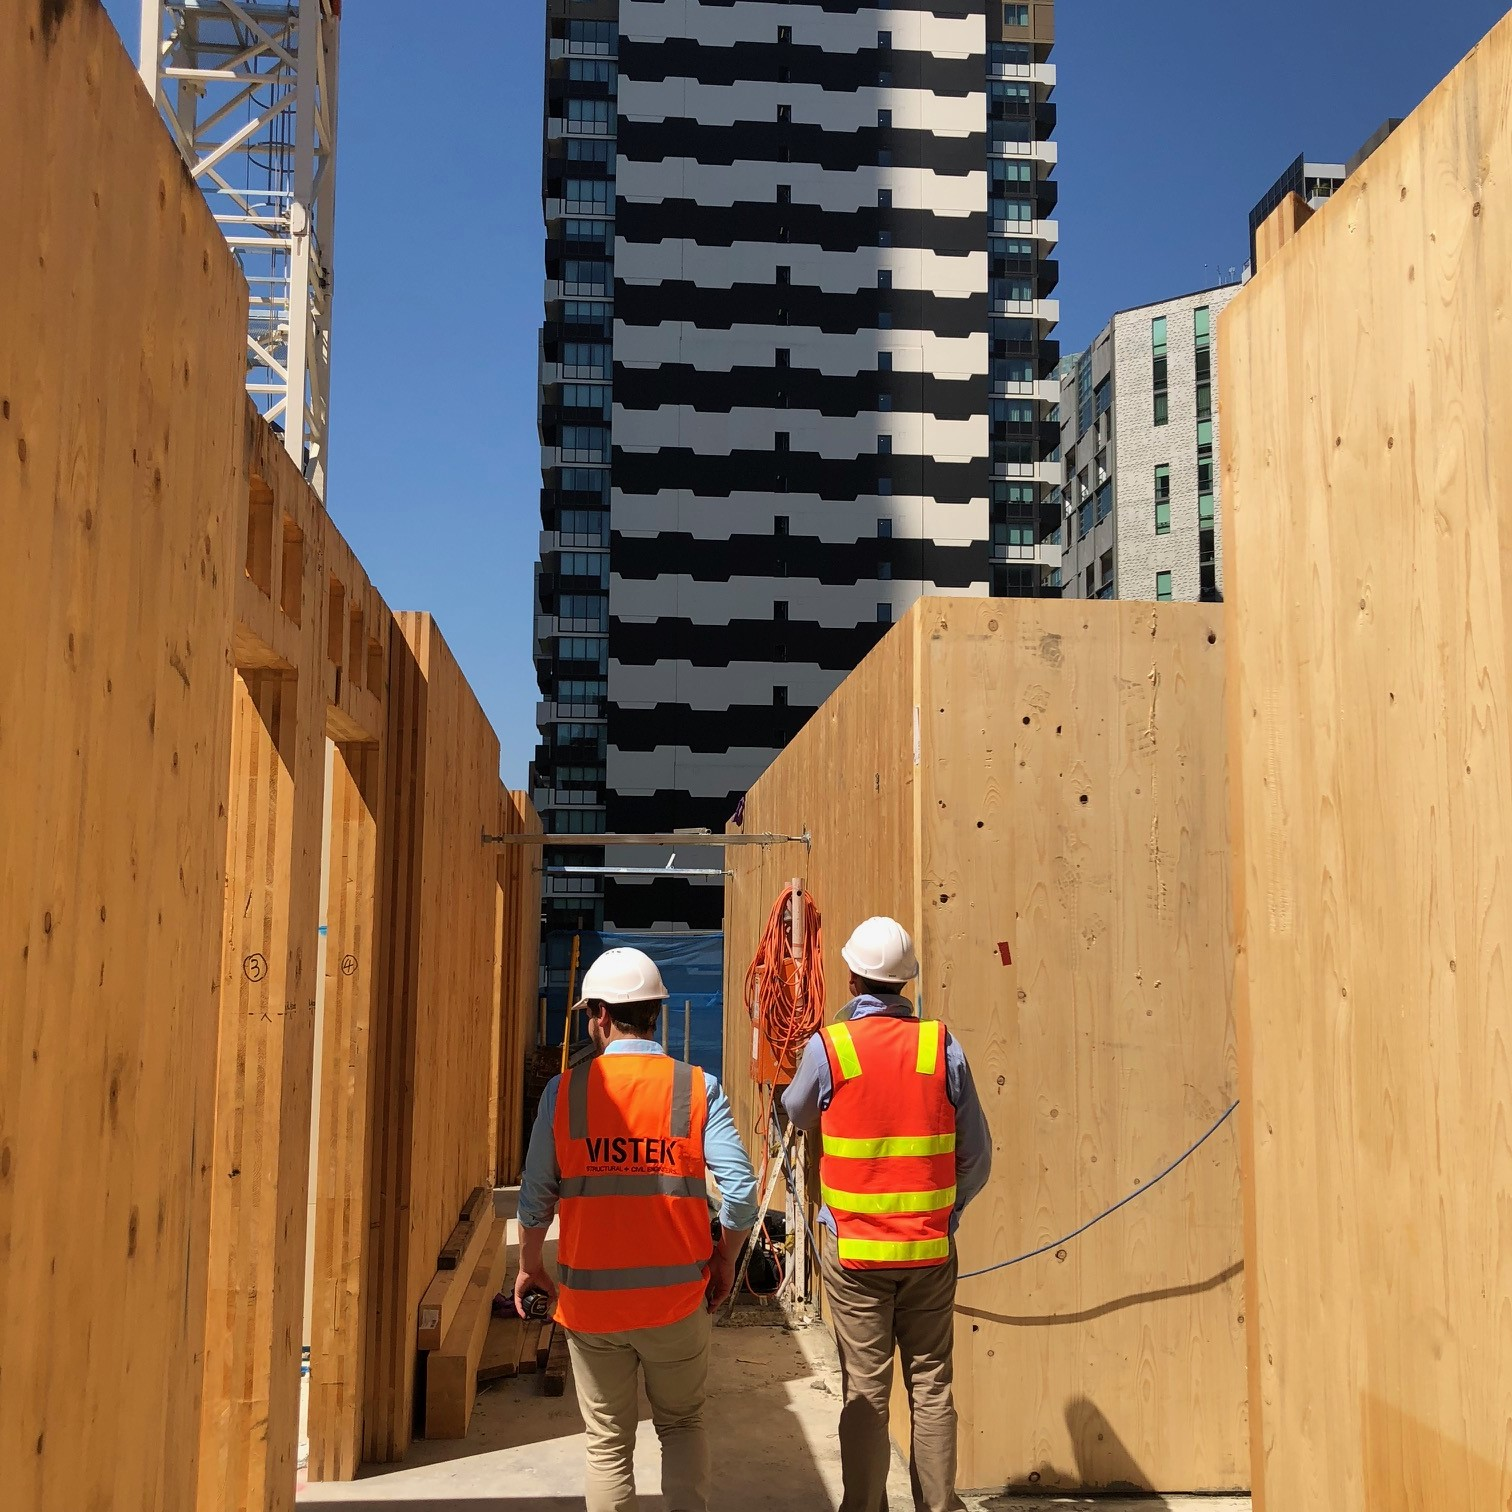 Vistek on site of CLT building under construction with temporary propping visible at 55 Southbank Blvd Melbourne